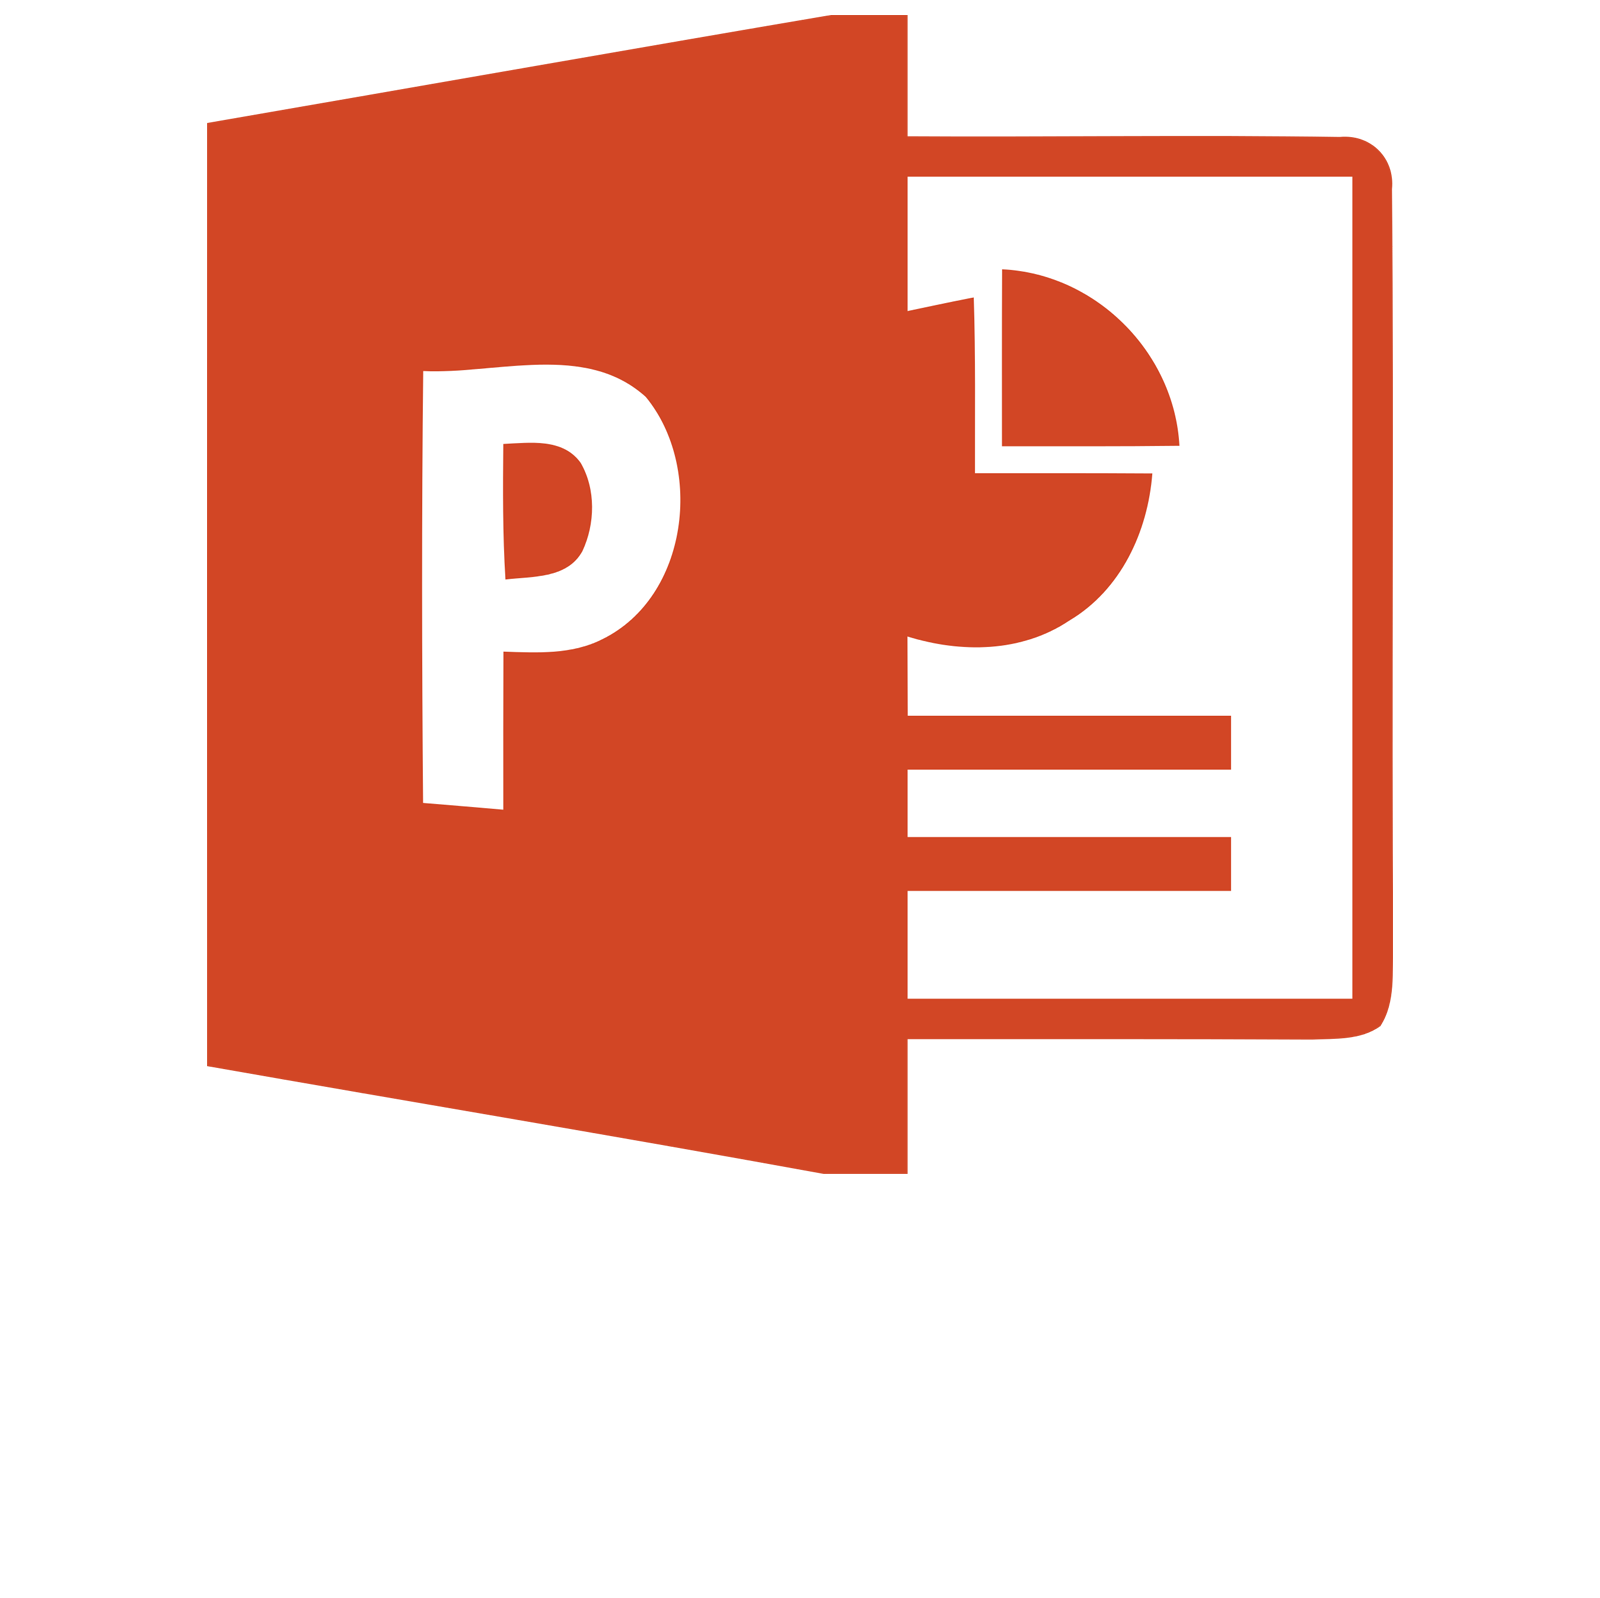 Powerpoint windows central. Wow clipart impressive